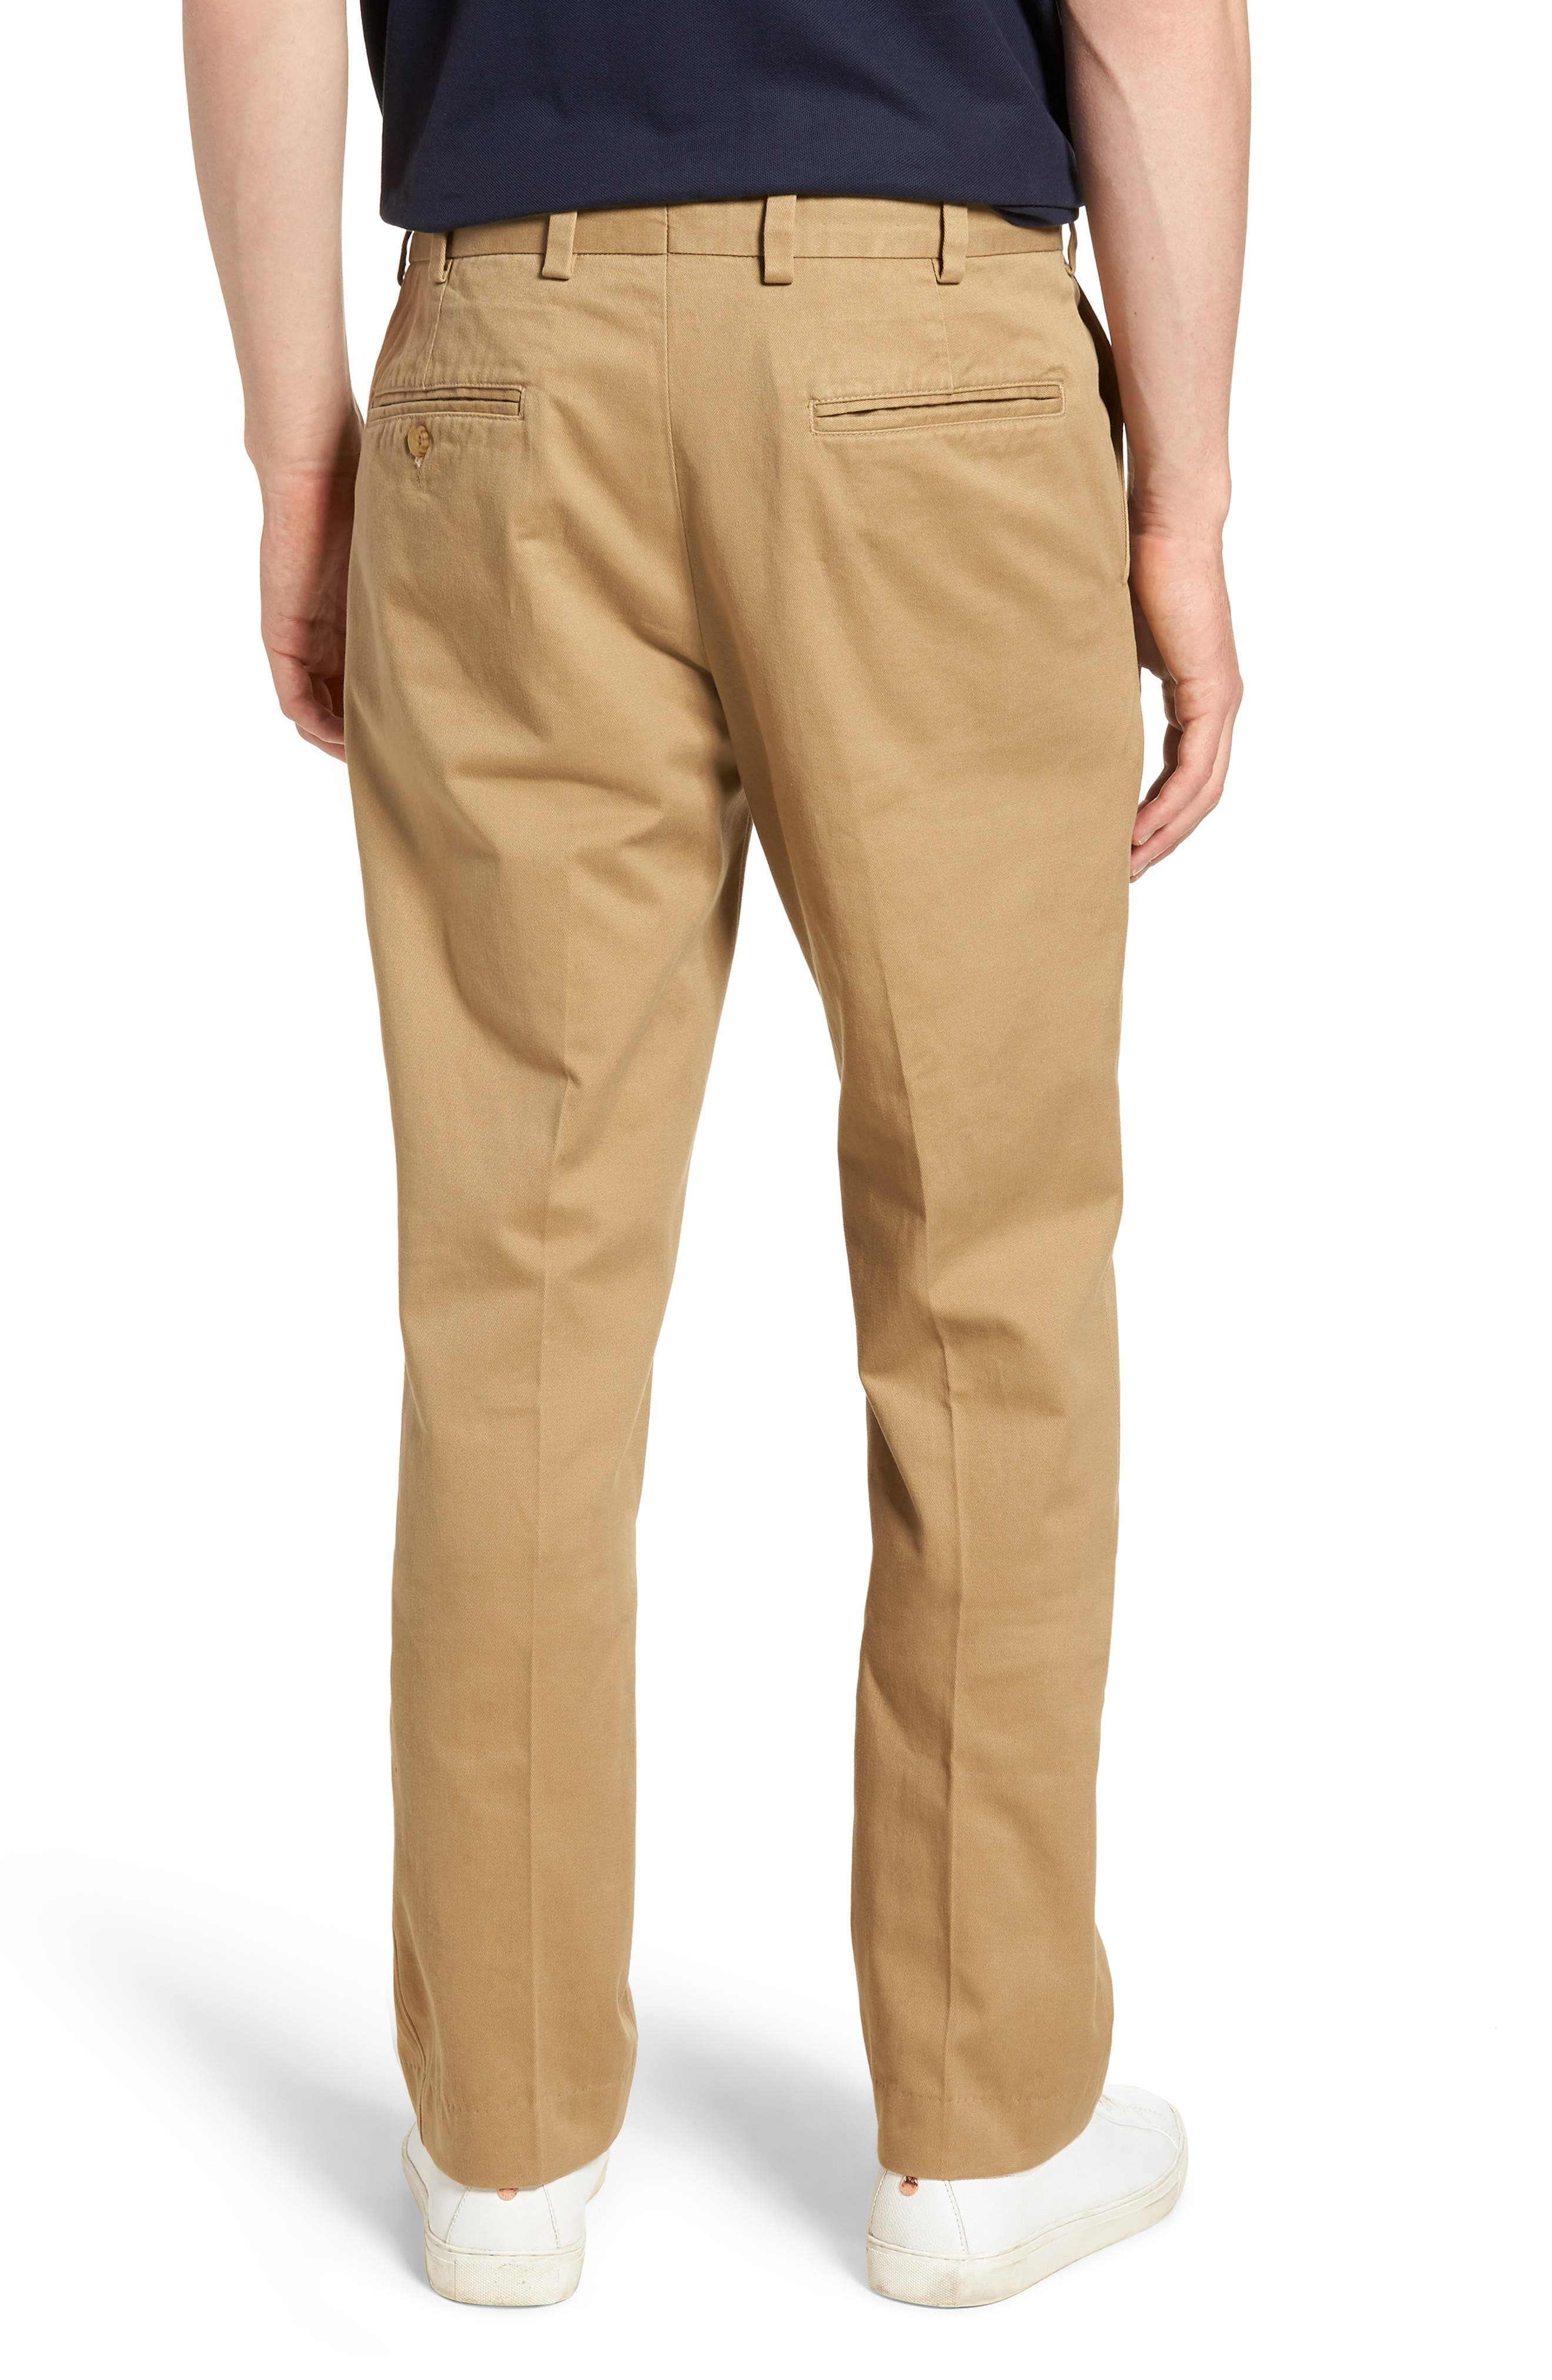 M3 Straight Fit Vintage Twill Flat Front Pants,                             Alternate thumbnail 2, color,                             210